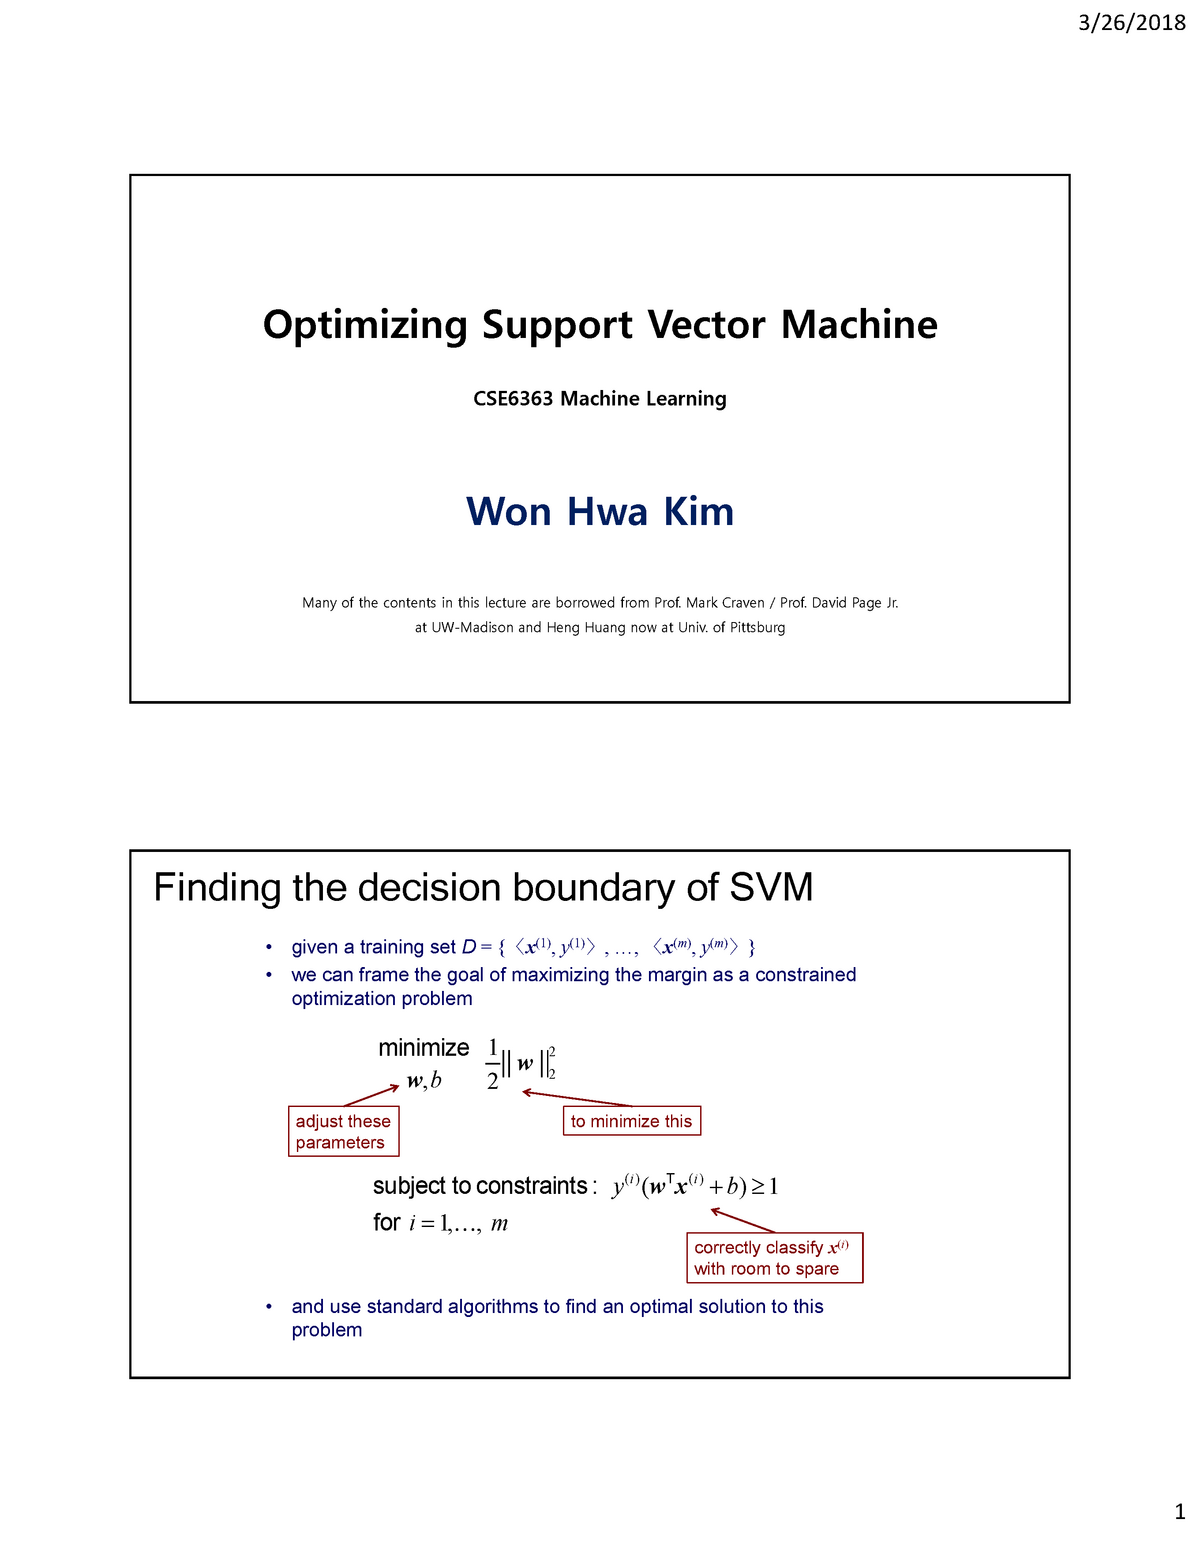 11 SVM optimization CSE-6363 - CSE 6364: MACHINE LEARNING - StuDocu